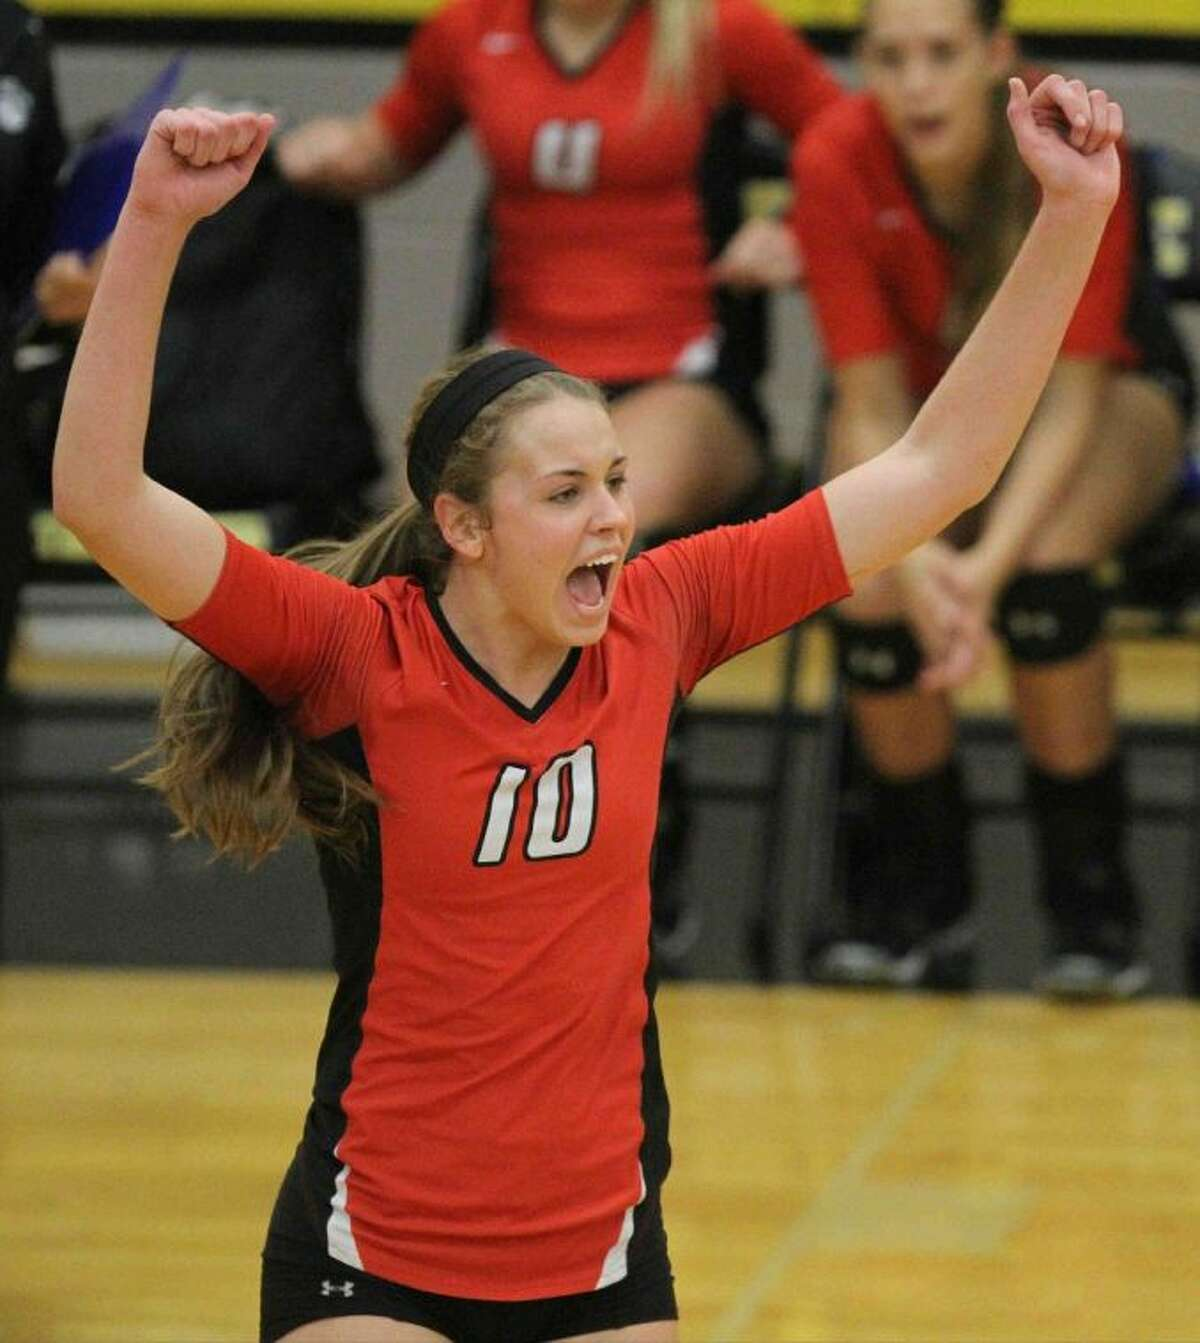 Oak Ridge's Victoria Harris celebrates a point against Conroe on Tuesday. To view or purchase this photo and others like it, visit HCNpics.com.